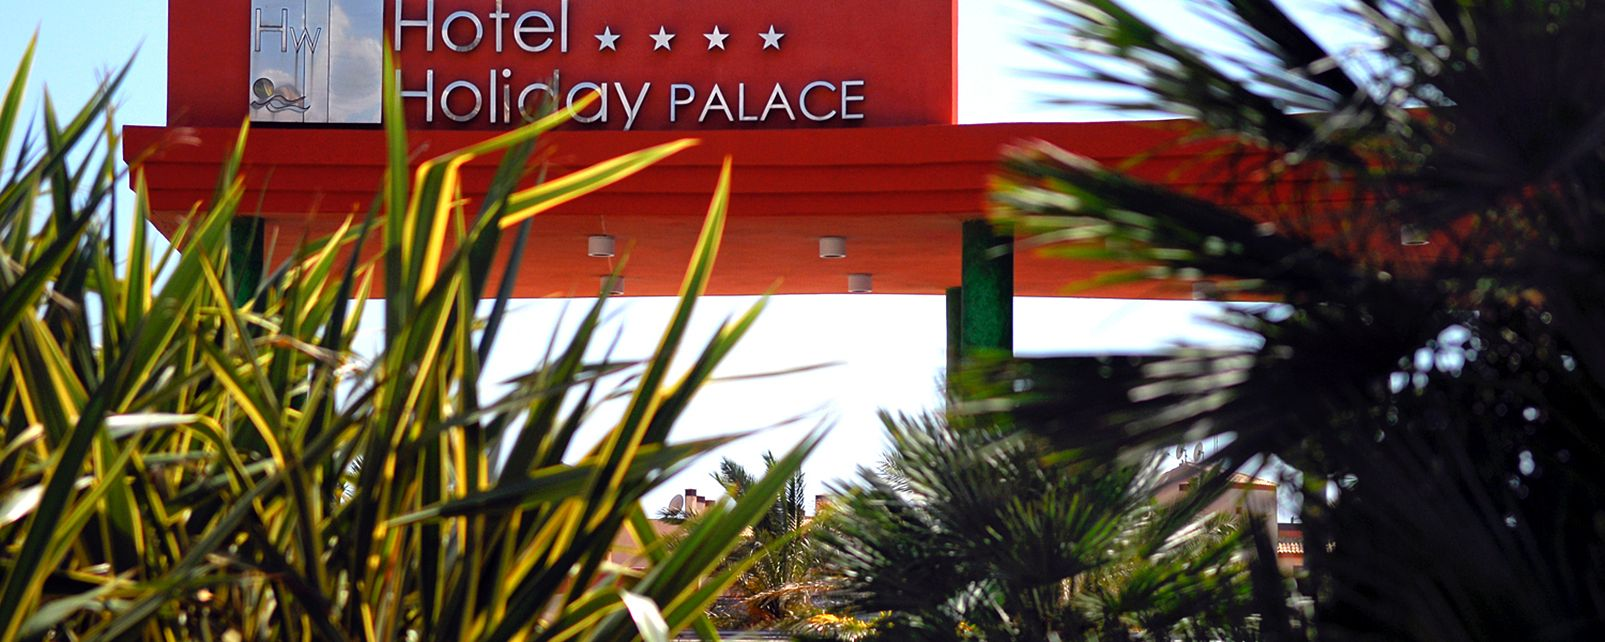 Hotel Holiday Palace